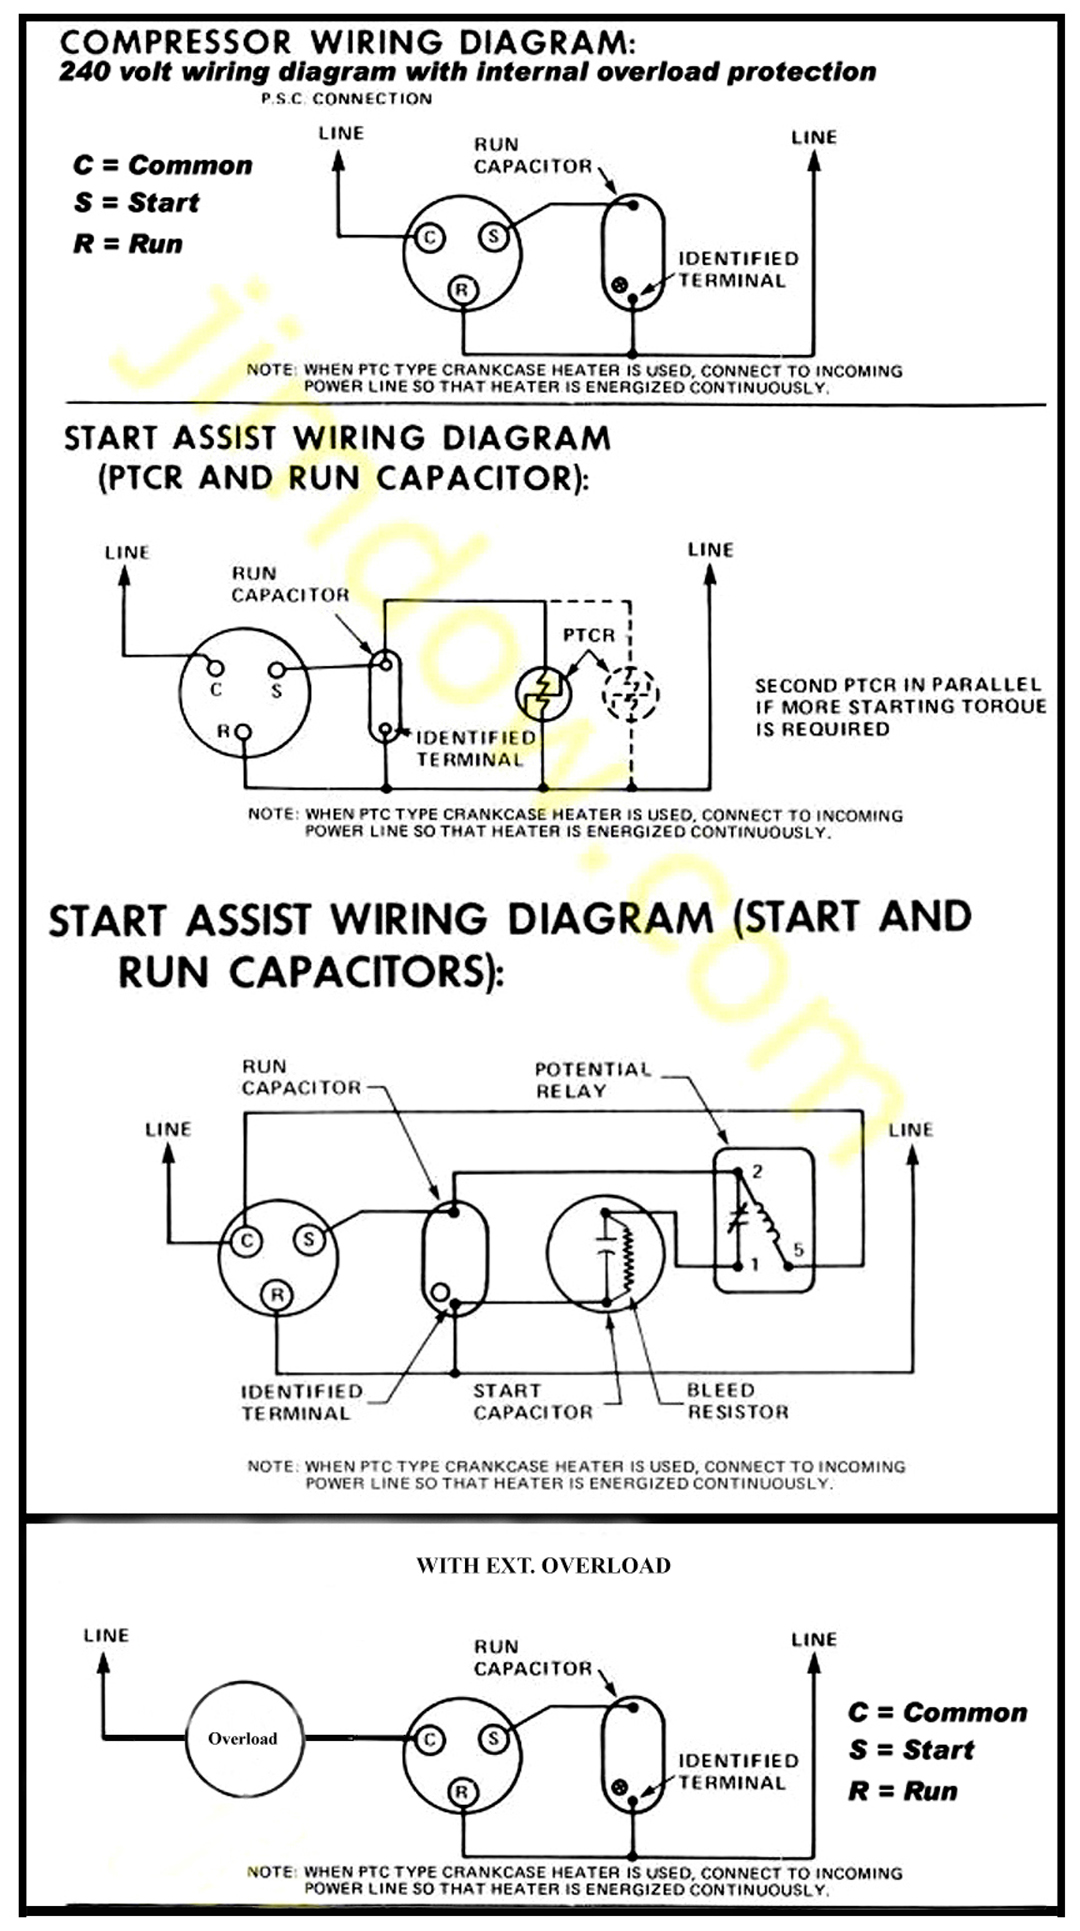 air conditioner compressor wiring general spud cannon relatedAircon Motor Wiring Diagram #2